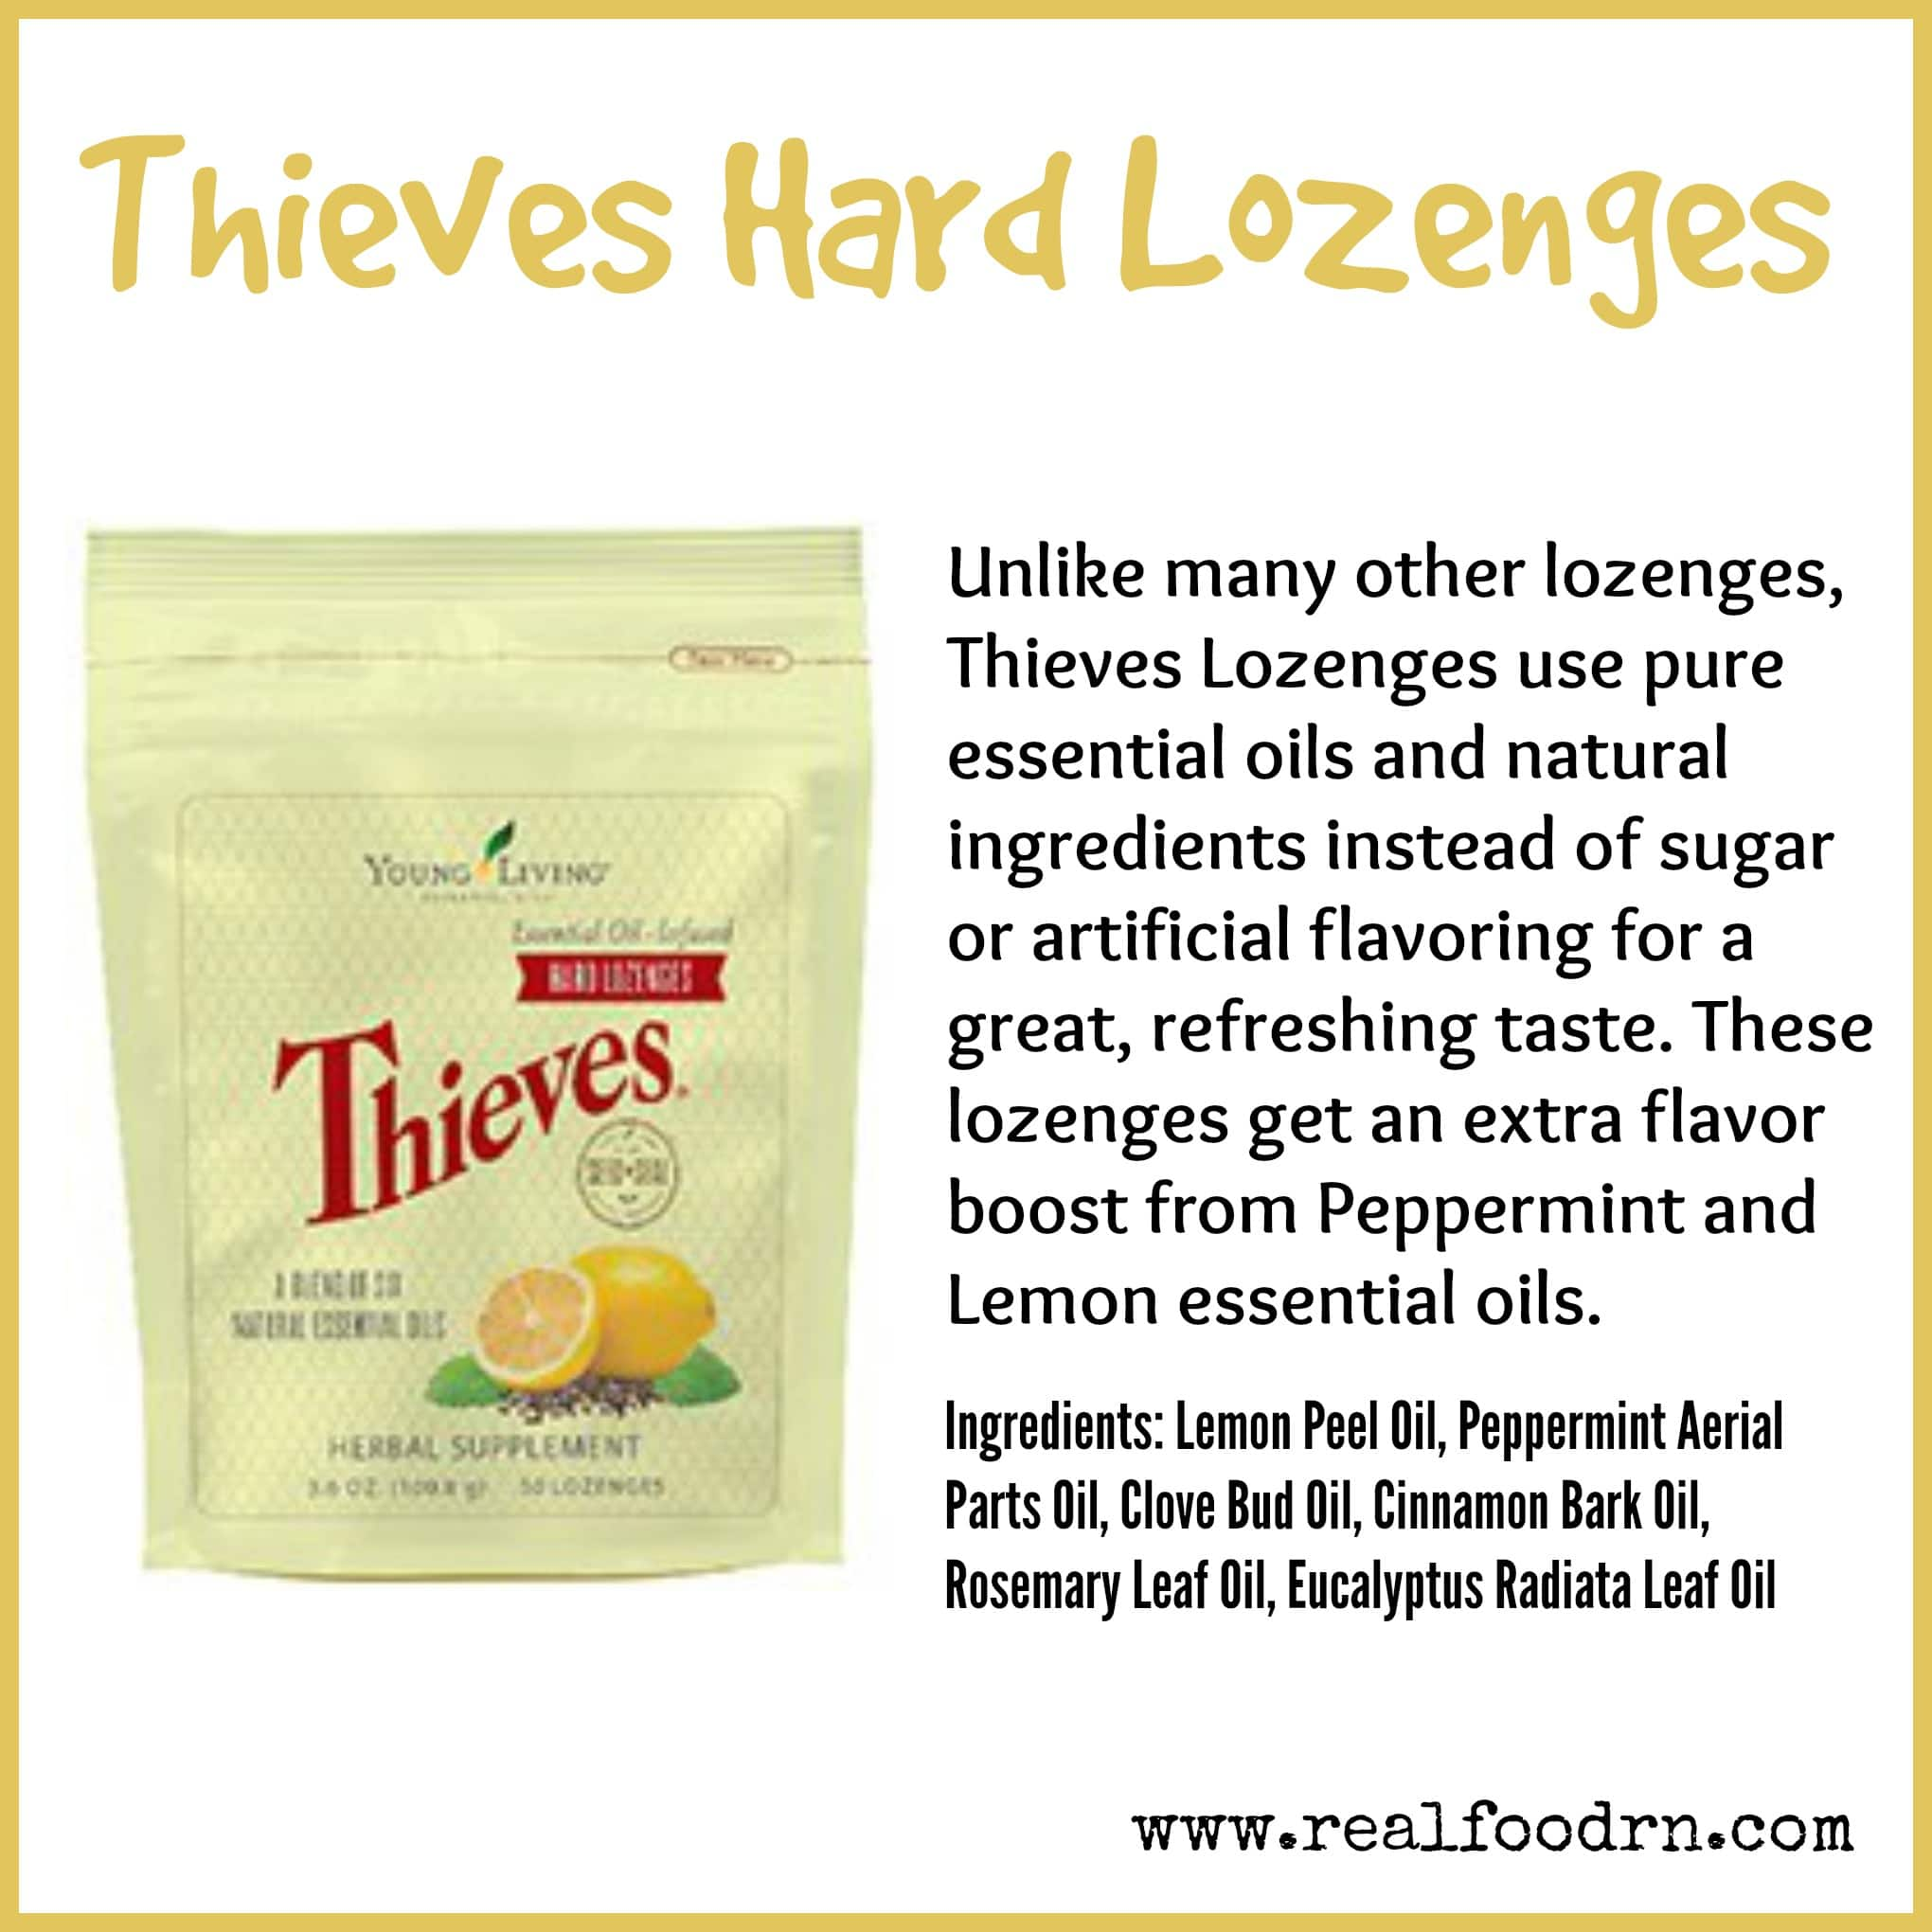 Thieves Hard Lozenges